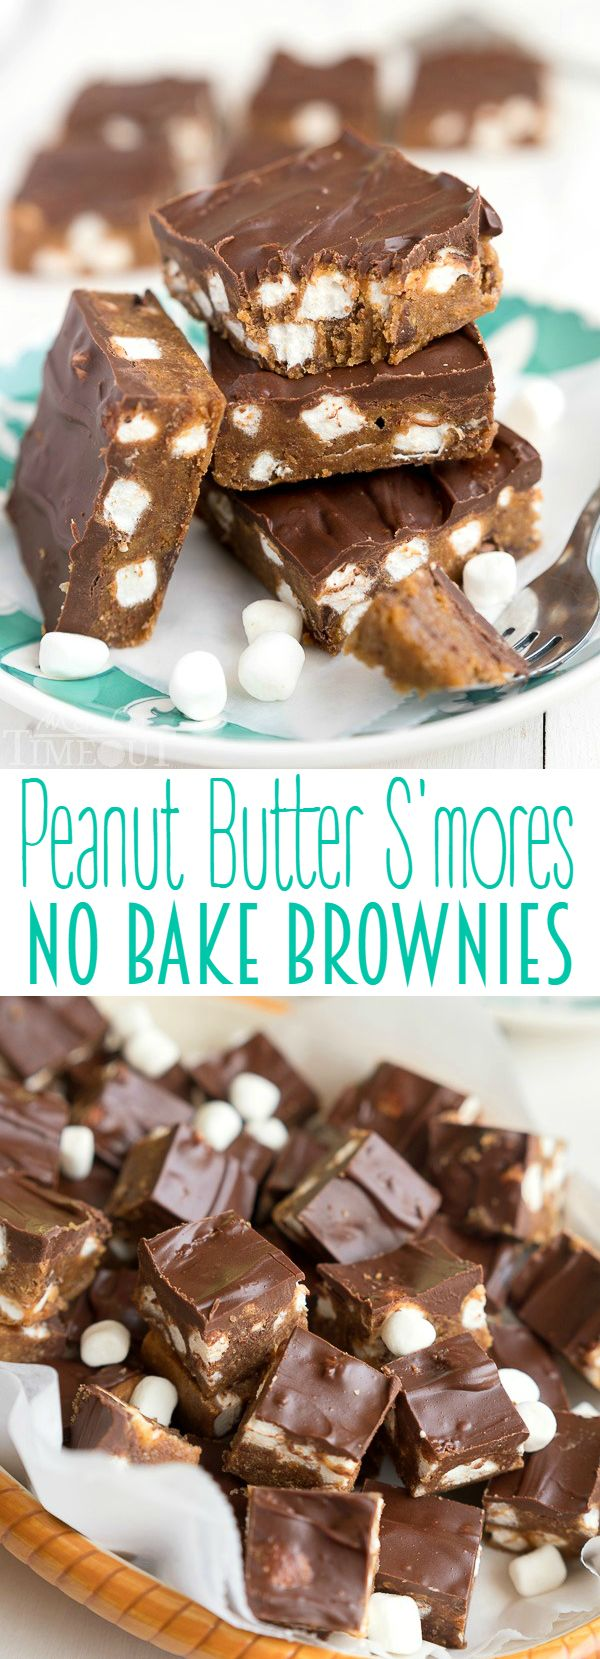 Decadent Peanut Butter S'mores No Bake Brownies can be whipped up in a jiffy and are just perfect for the hot summer months! This easy dessert recipe will having you coming back again and again. Cut them into small bites to feed a crowd! | MomOnTimeout.com: